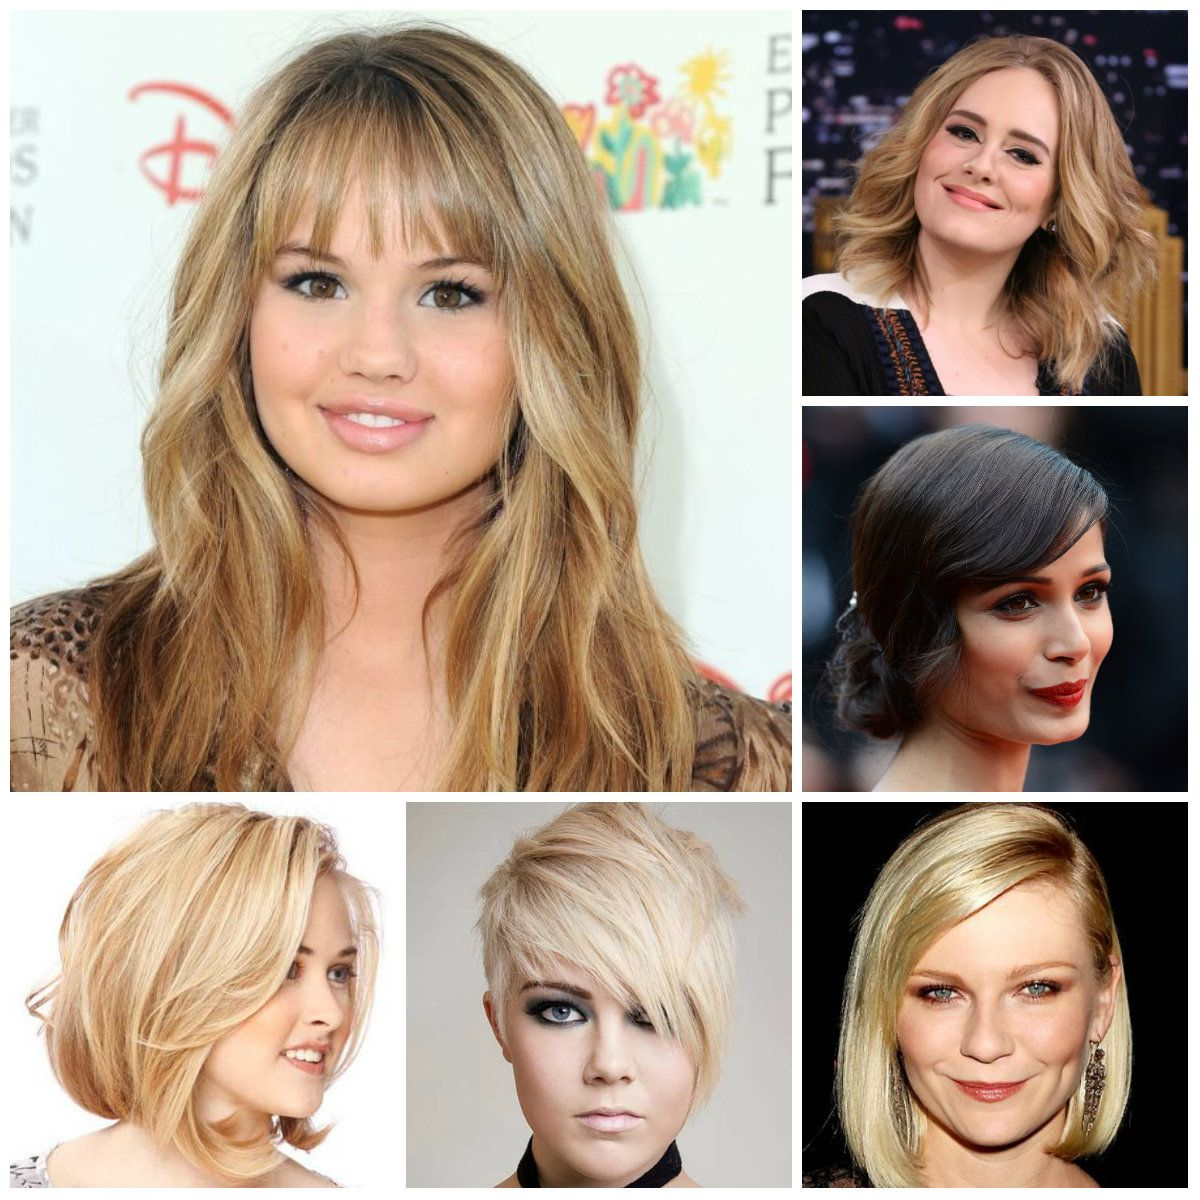 coolest hairstyles for round faces 2016 | haircuts, hairstyles 2016